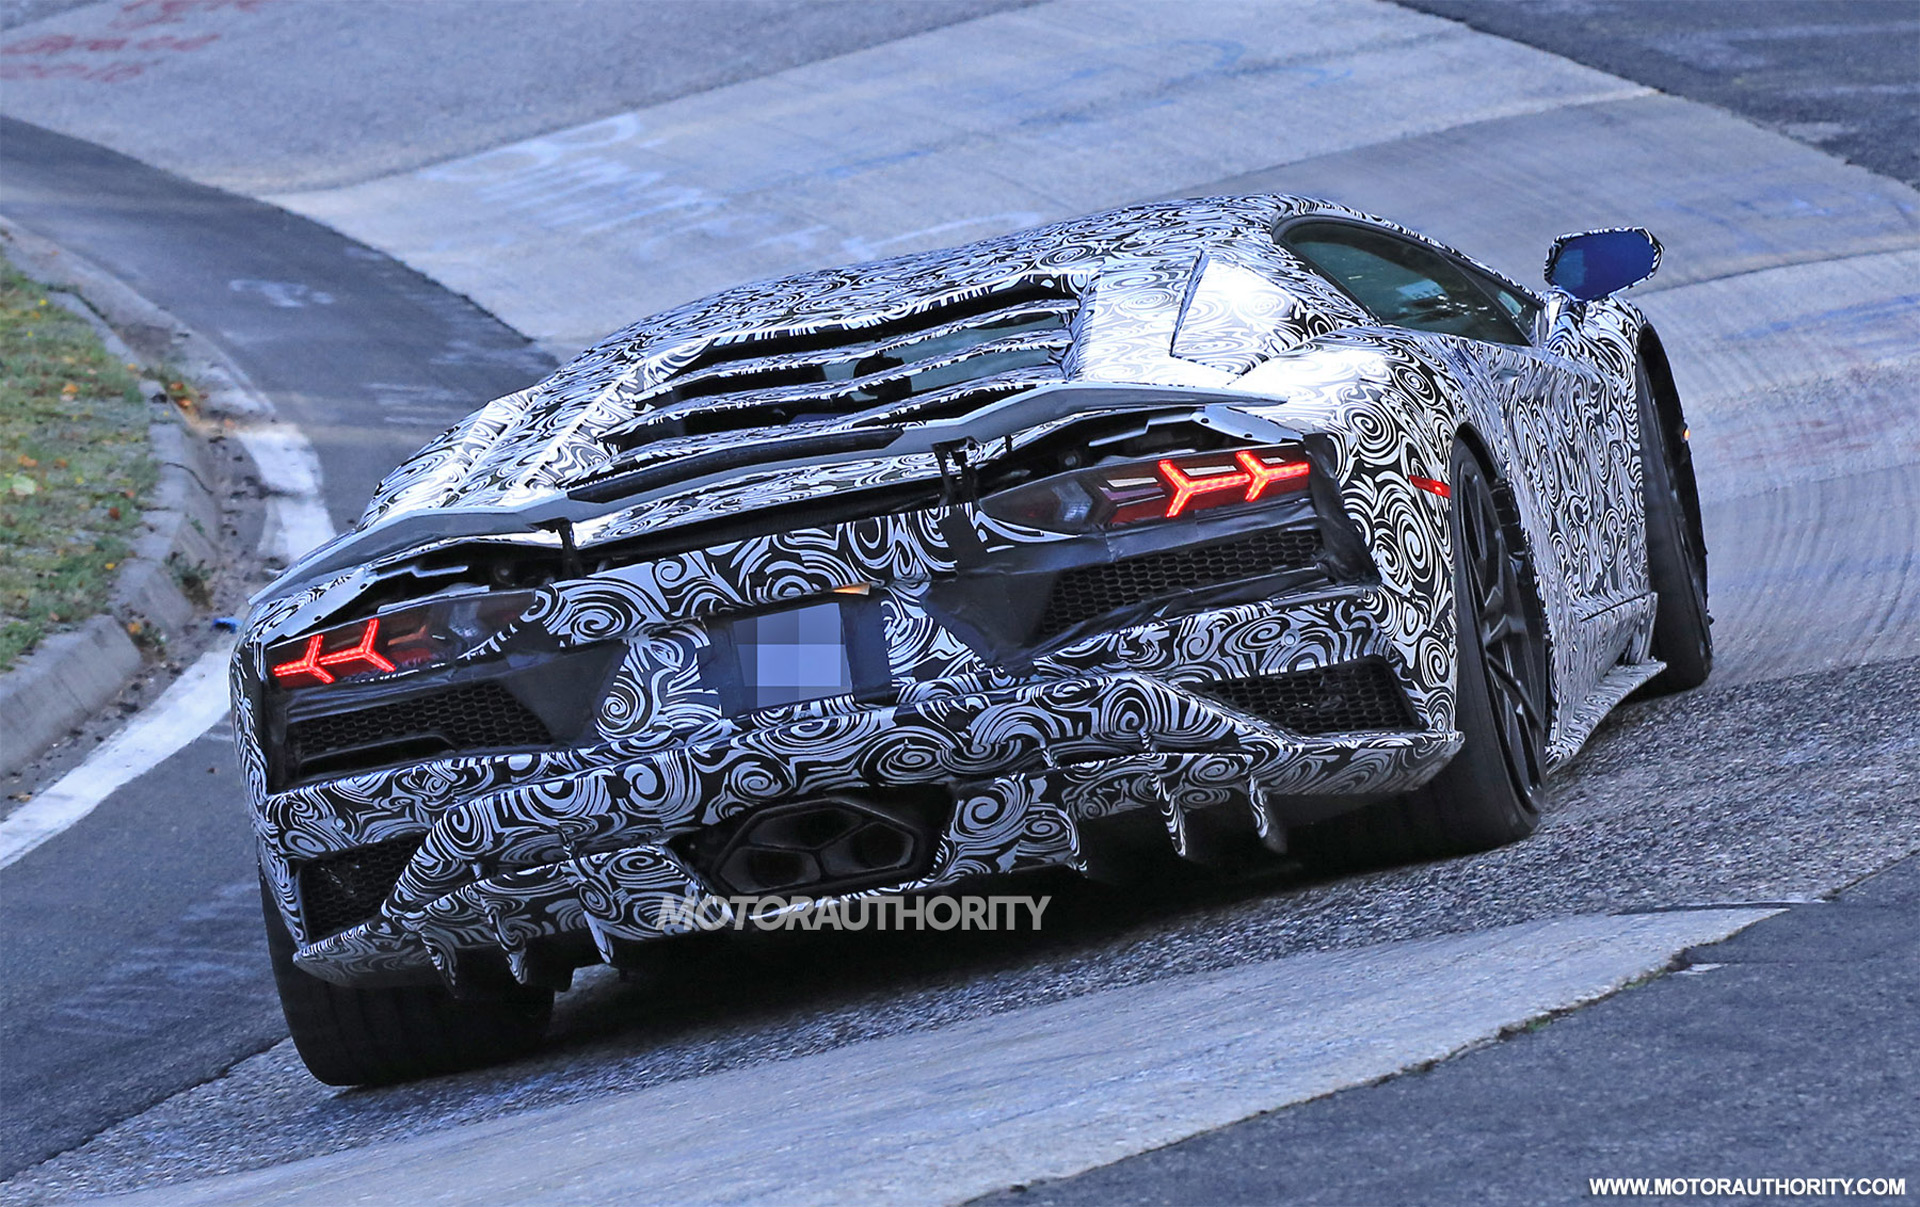 Mansory Carbonado Price Awesome 2018 Lamborghini Aventador Facelift Spied 7 Will the